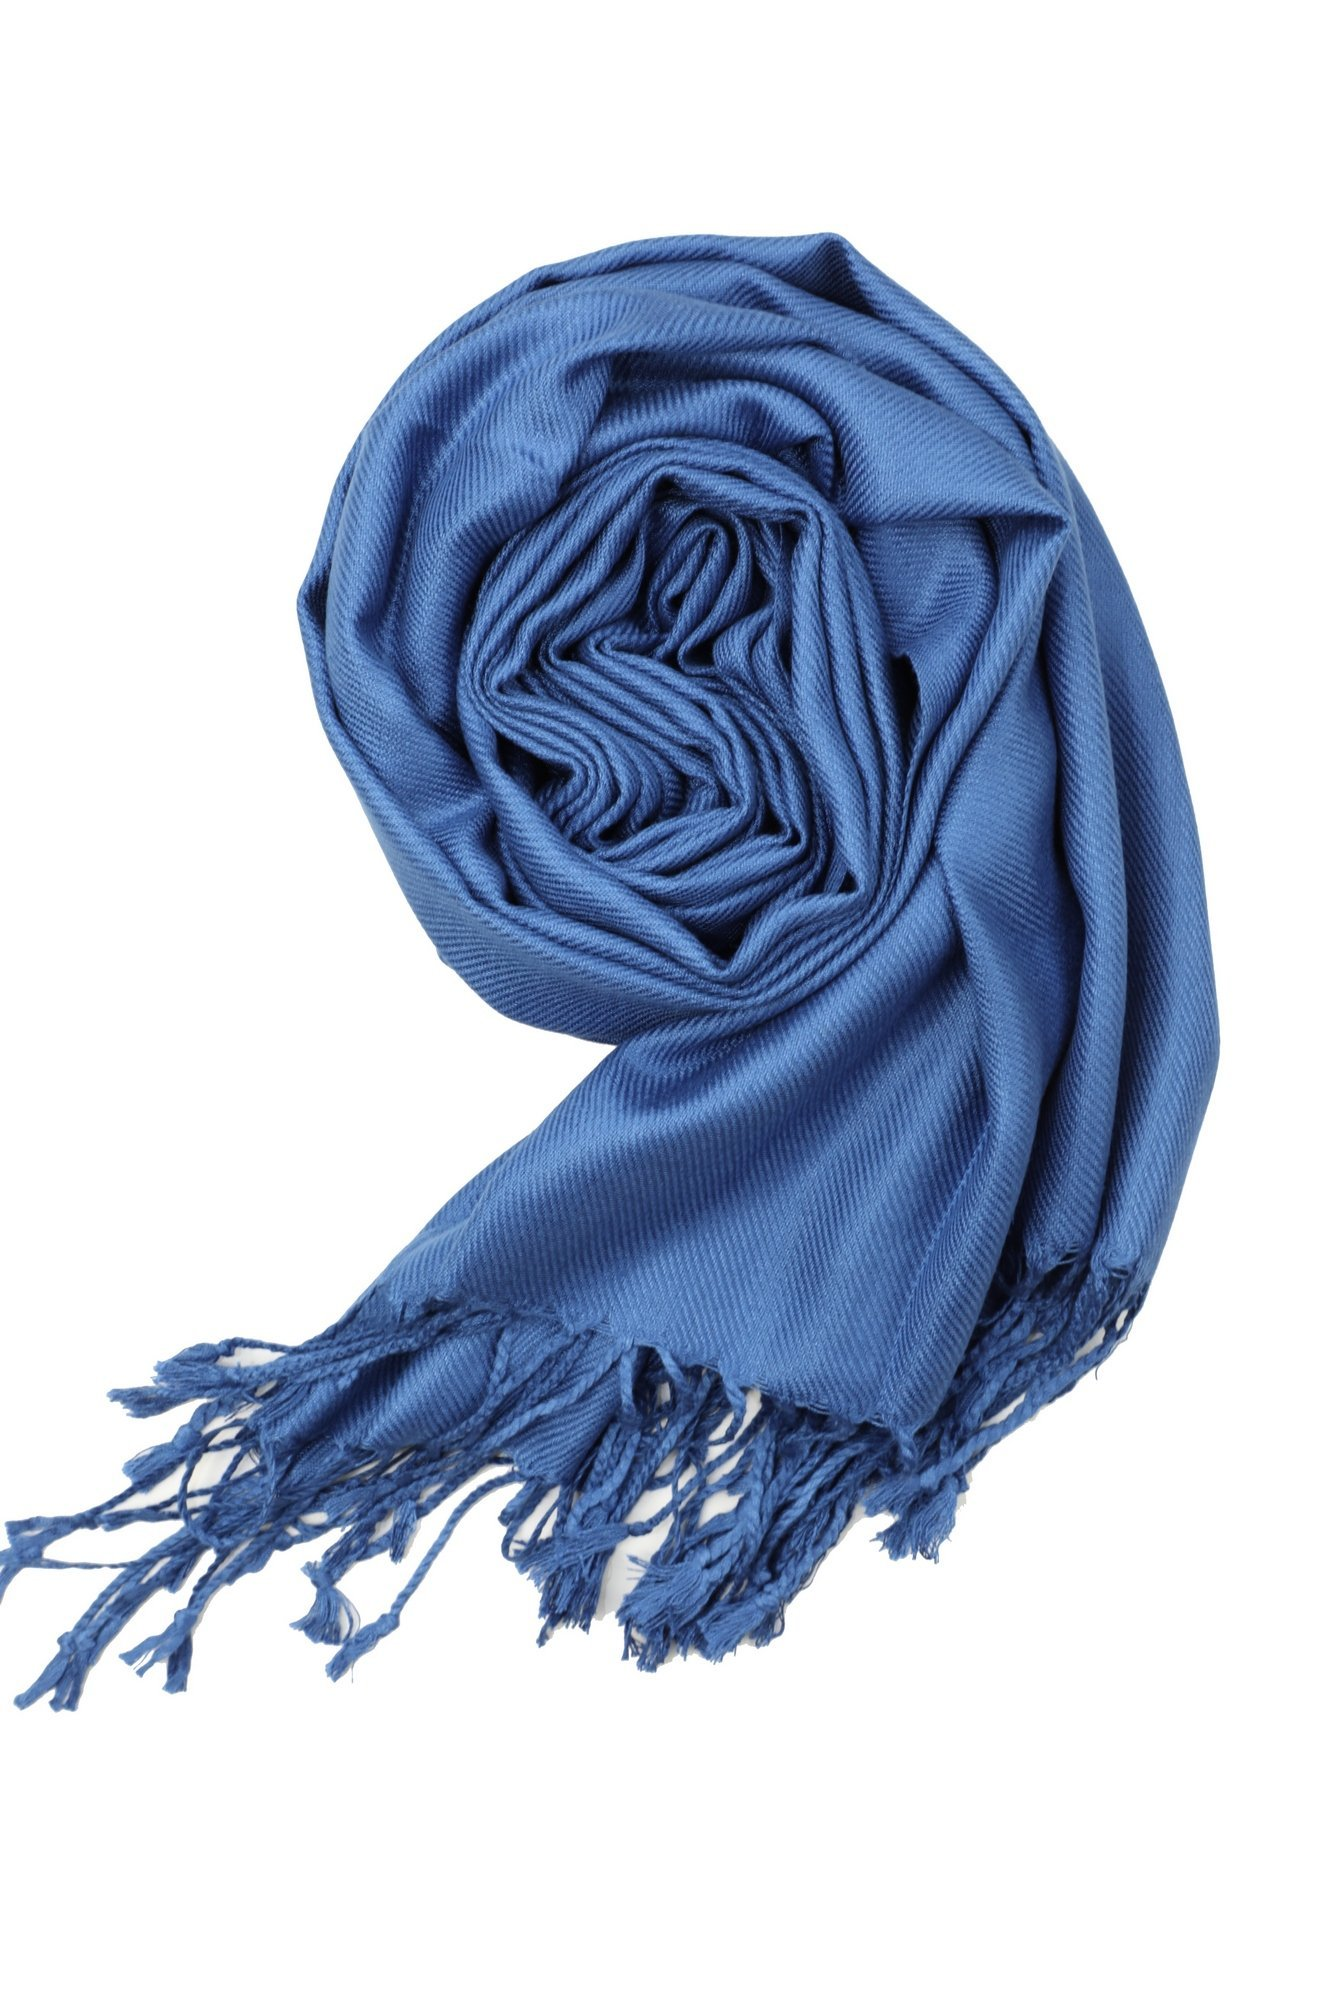 Achillea Large Soft Silky Pashmina Shawl Wrap Scarf in Solid Colors (Cobalt Blue) by Achillea (Image #3)